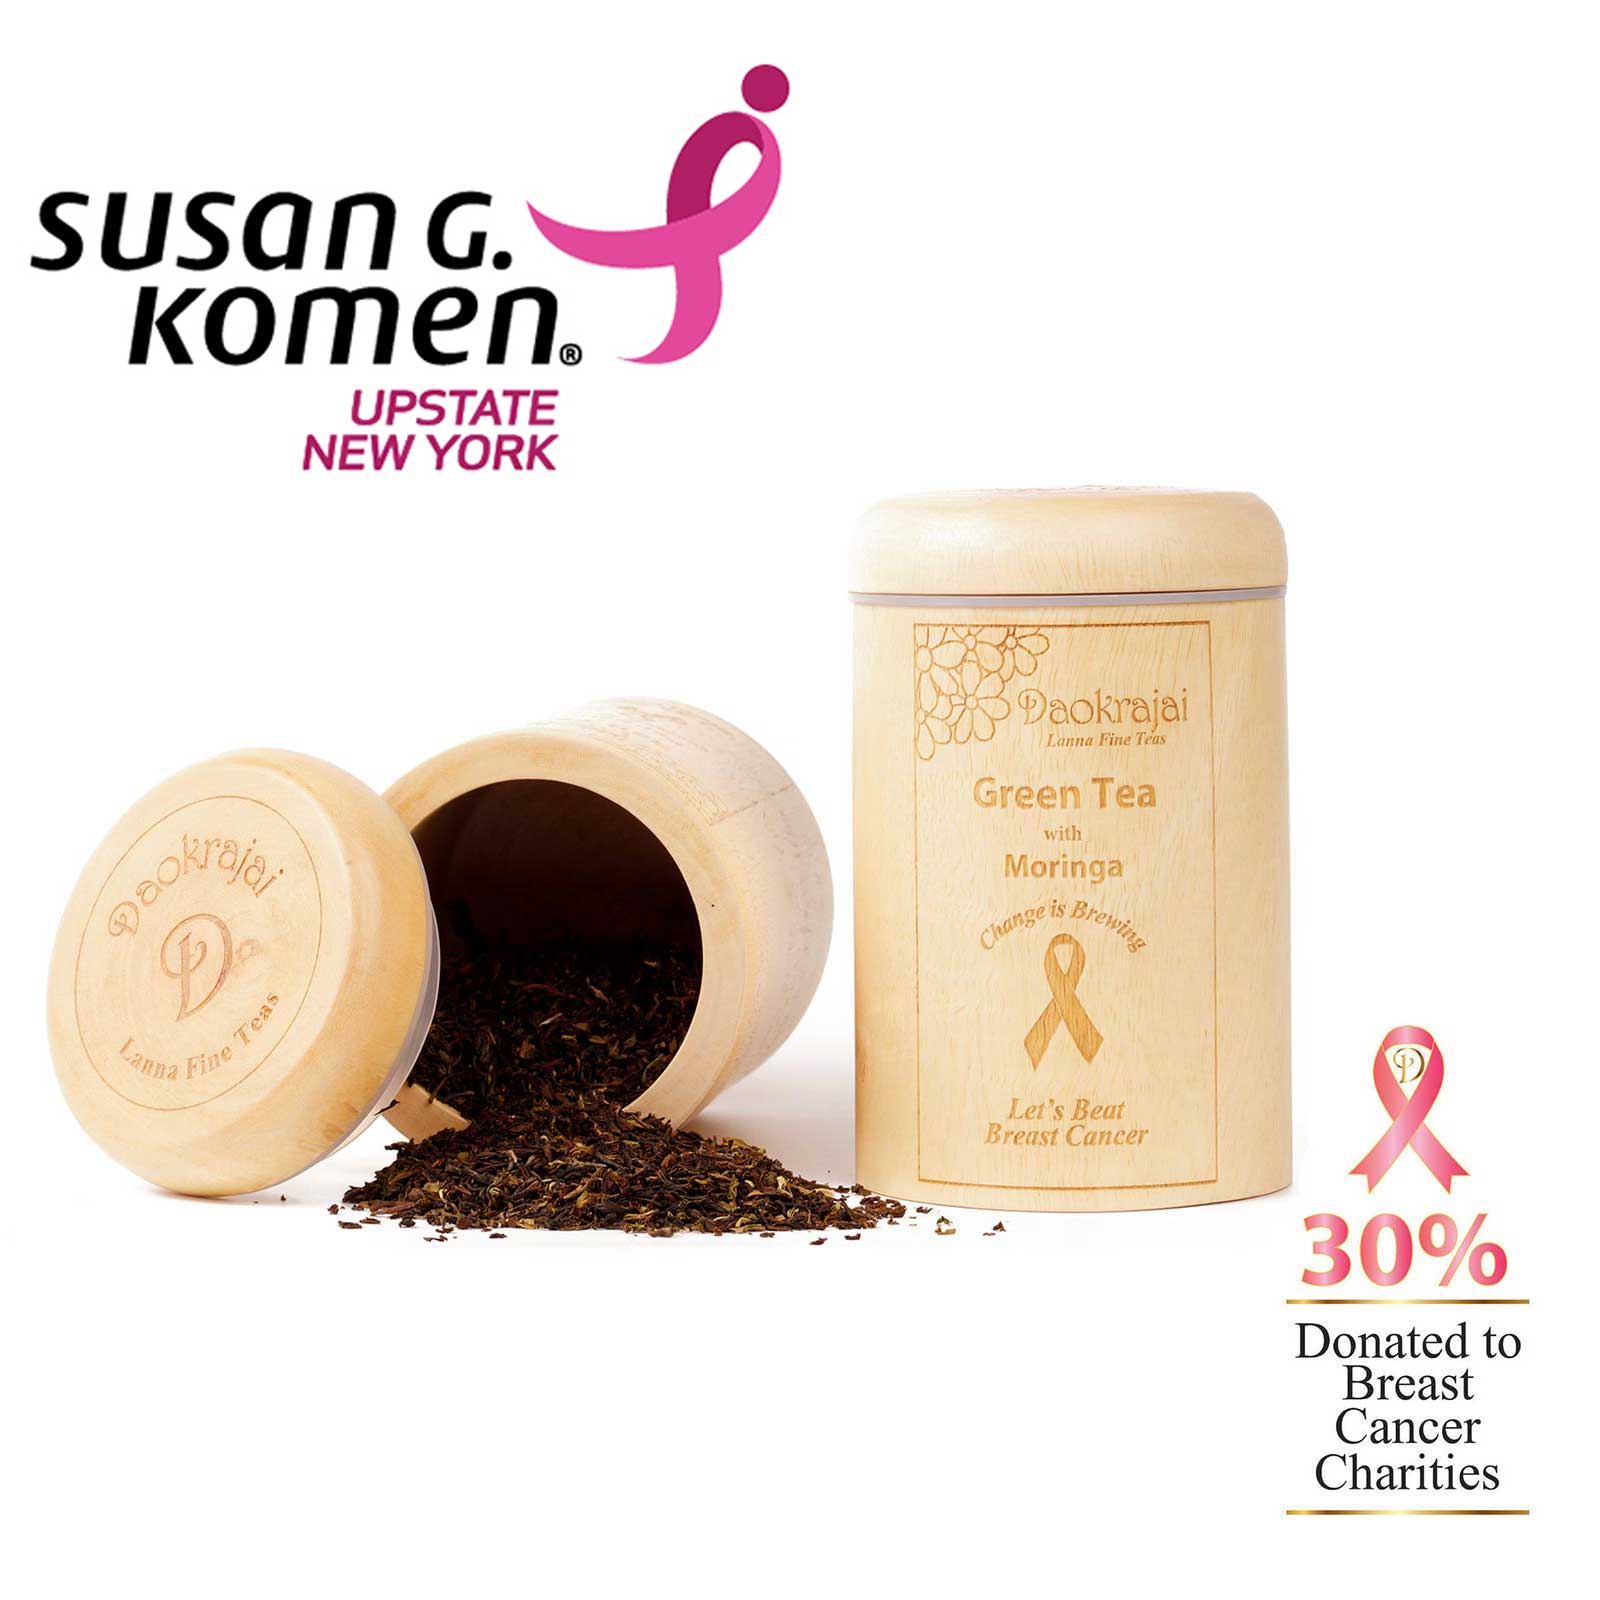 Green Tea Moringa Caddy supporting Susan G. Komen New York Breast Cancer Charity